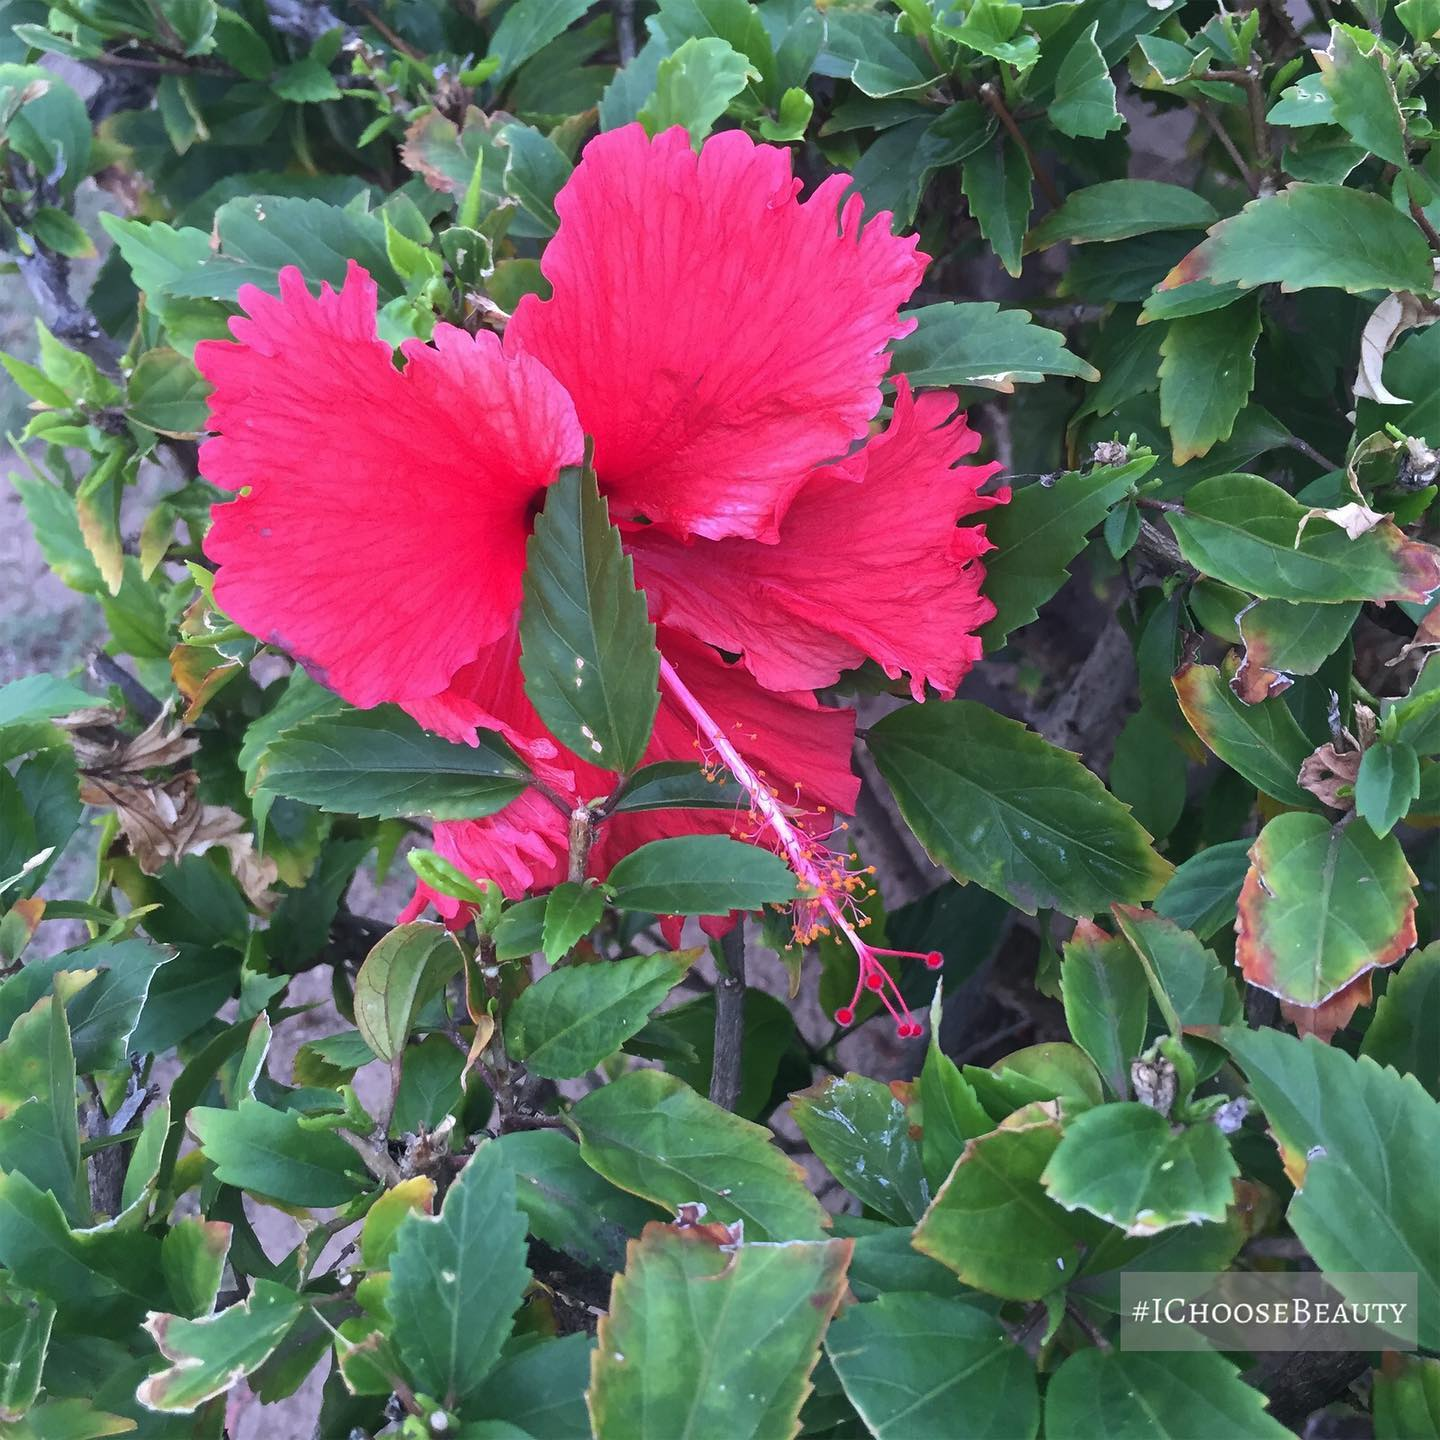 Saw this lone bright pink hibiscus in a bush in a parking lot. Beauty is all around us.  #ichoosebeauty Day 2566